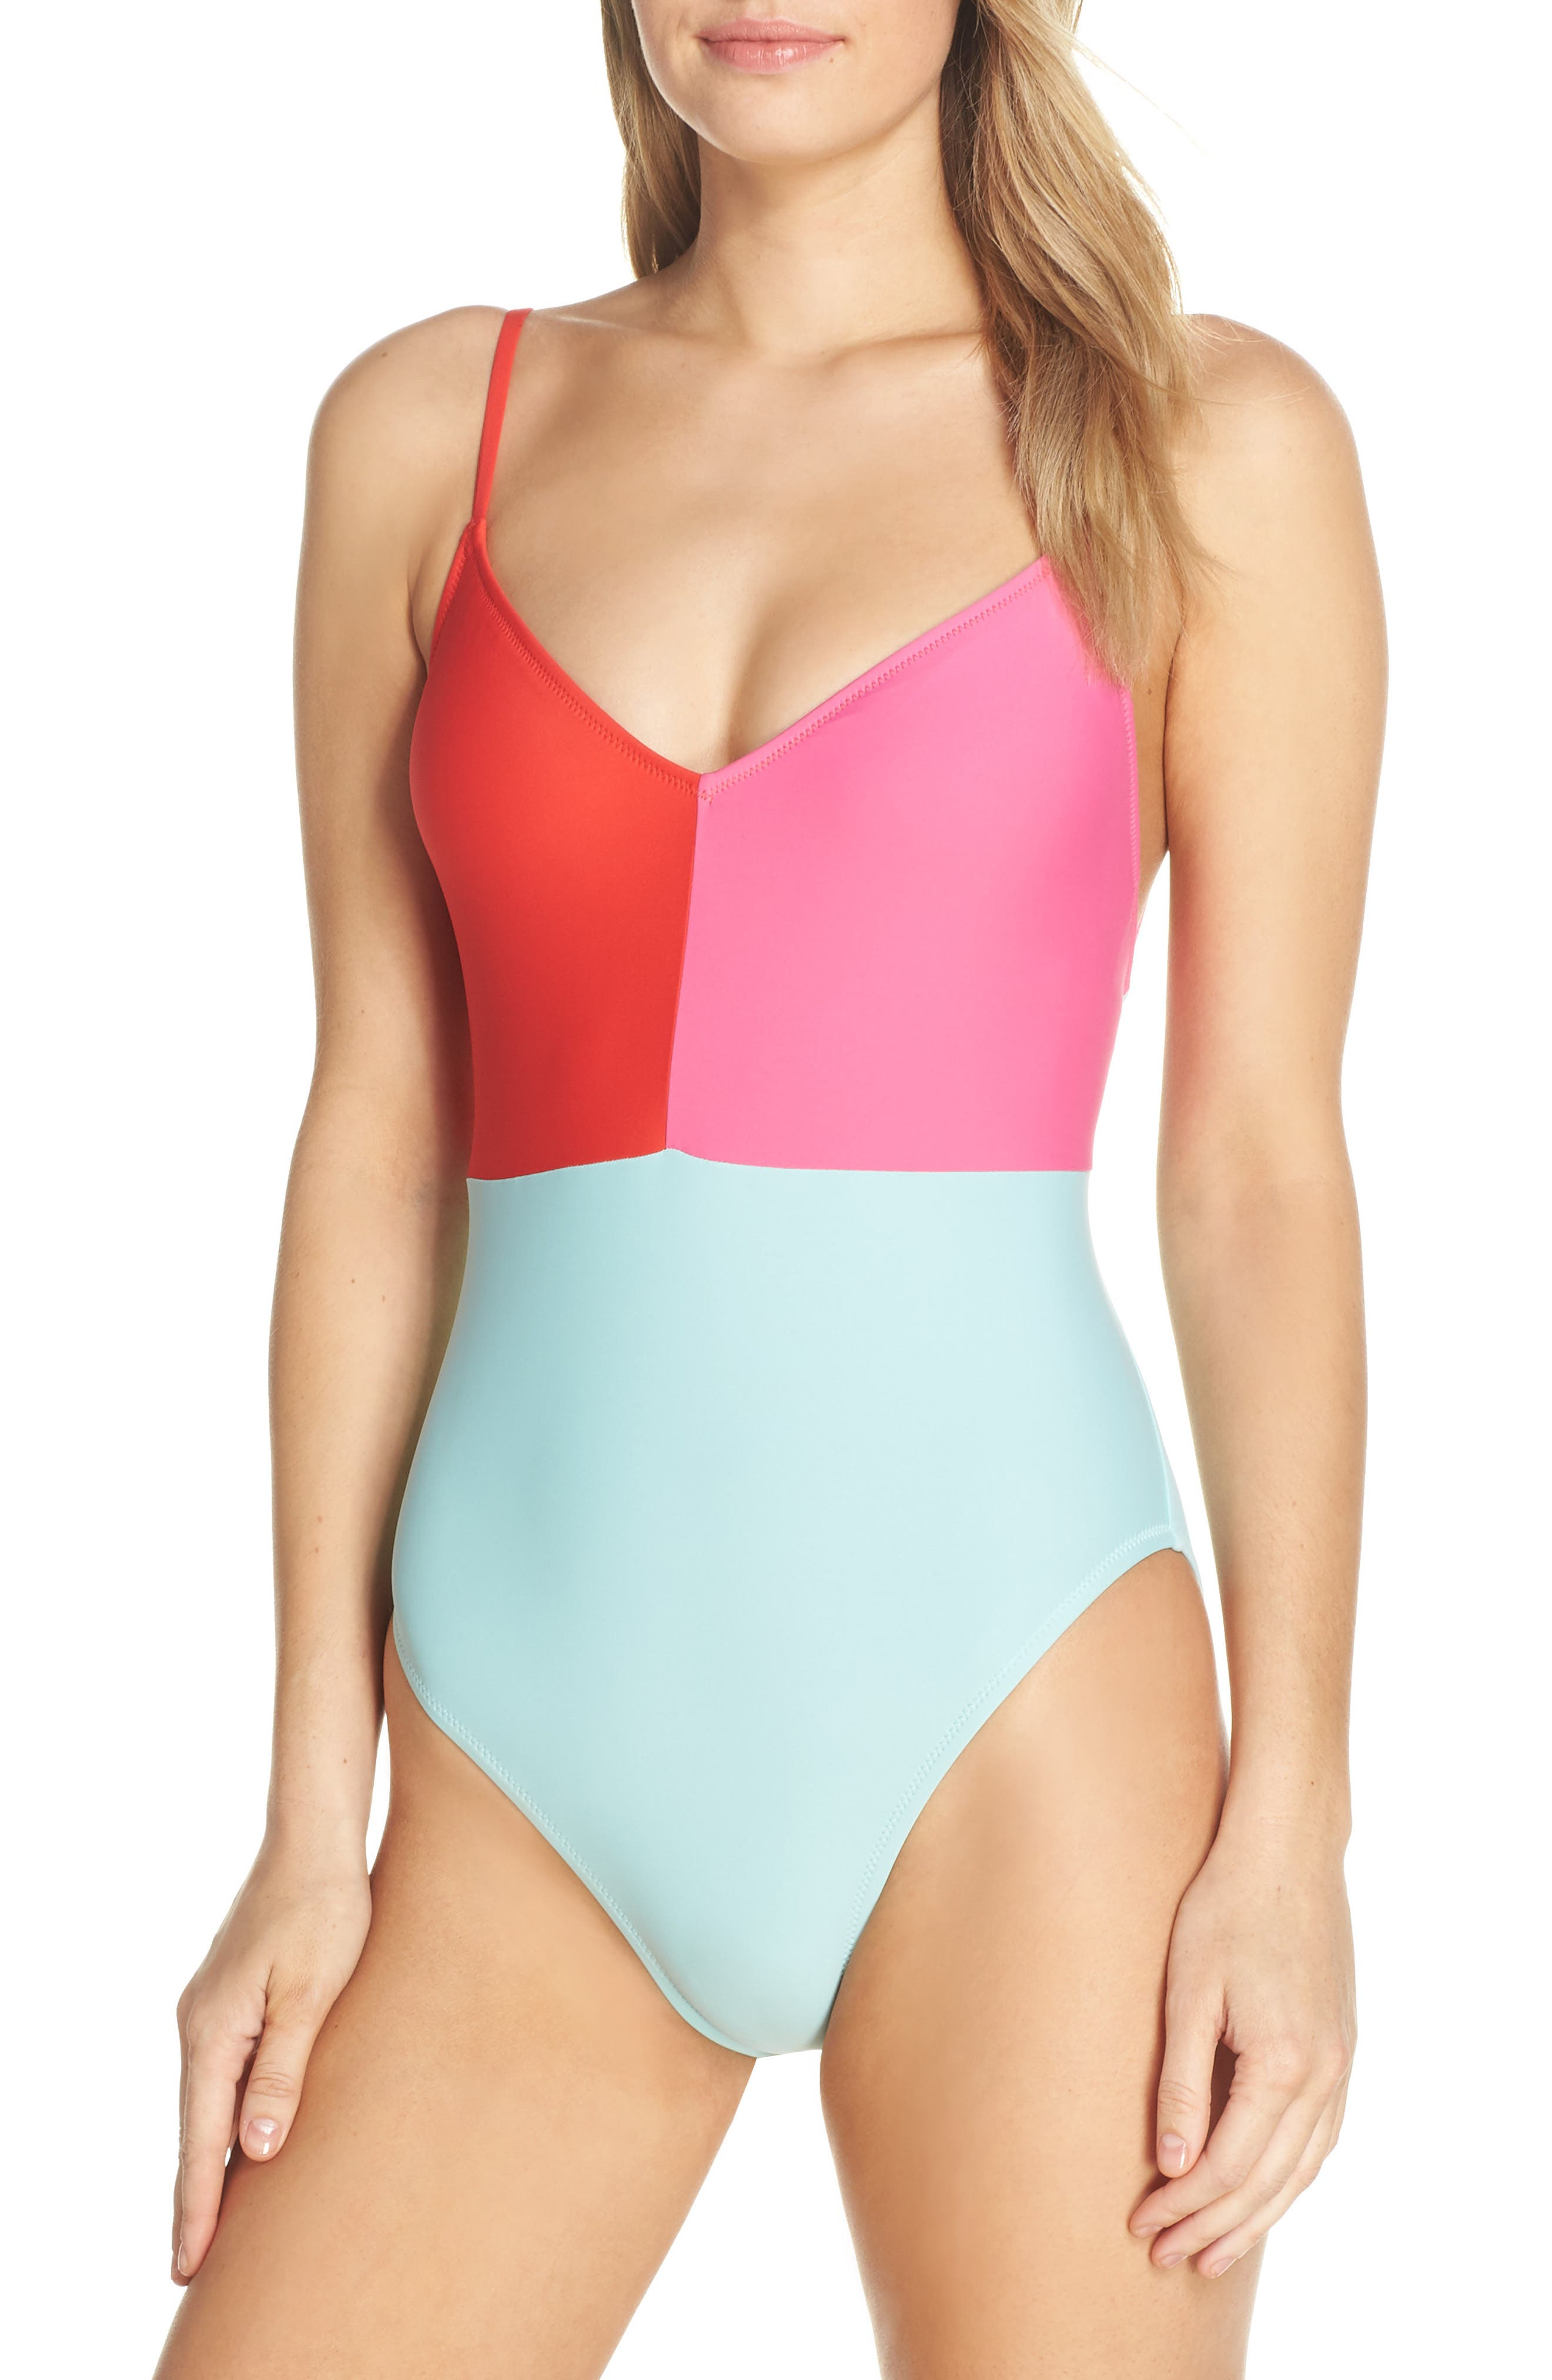 1950s Swimsuits, 50s Bathing Suits, Retro Swimwear Womens J.crew Colorblock Strappy One-Piece Swimsuit $110.00 AT vintagedancer.com